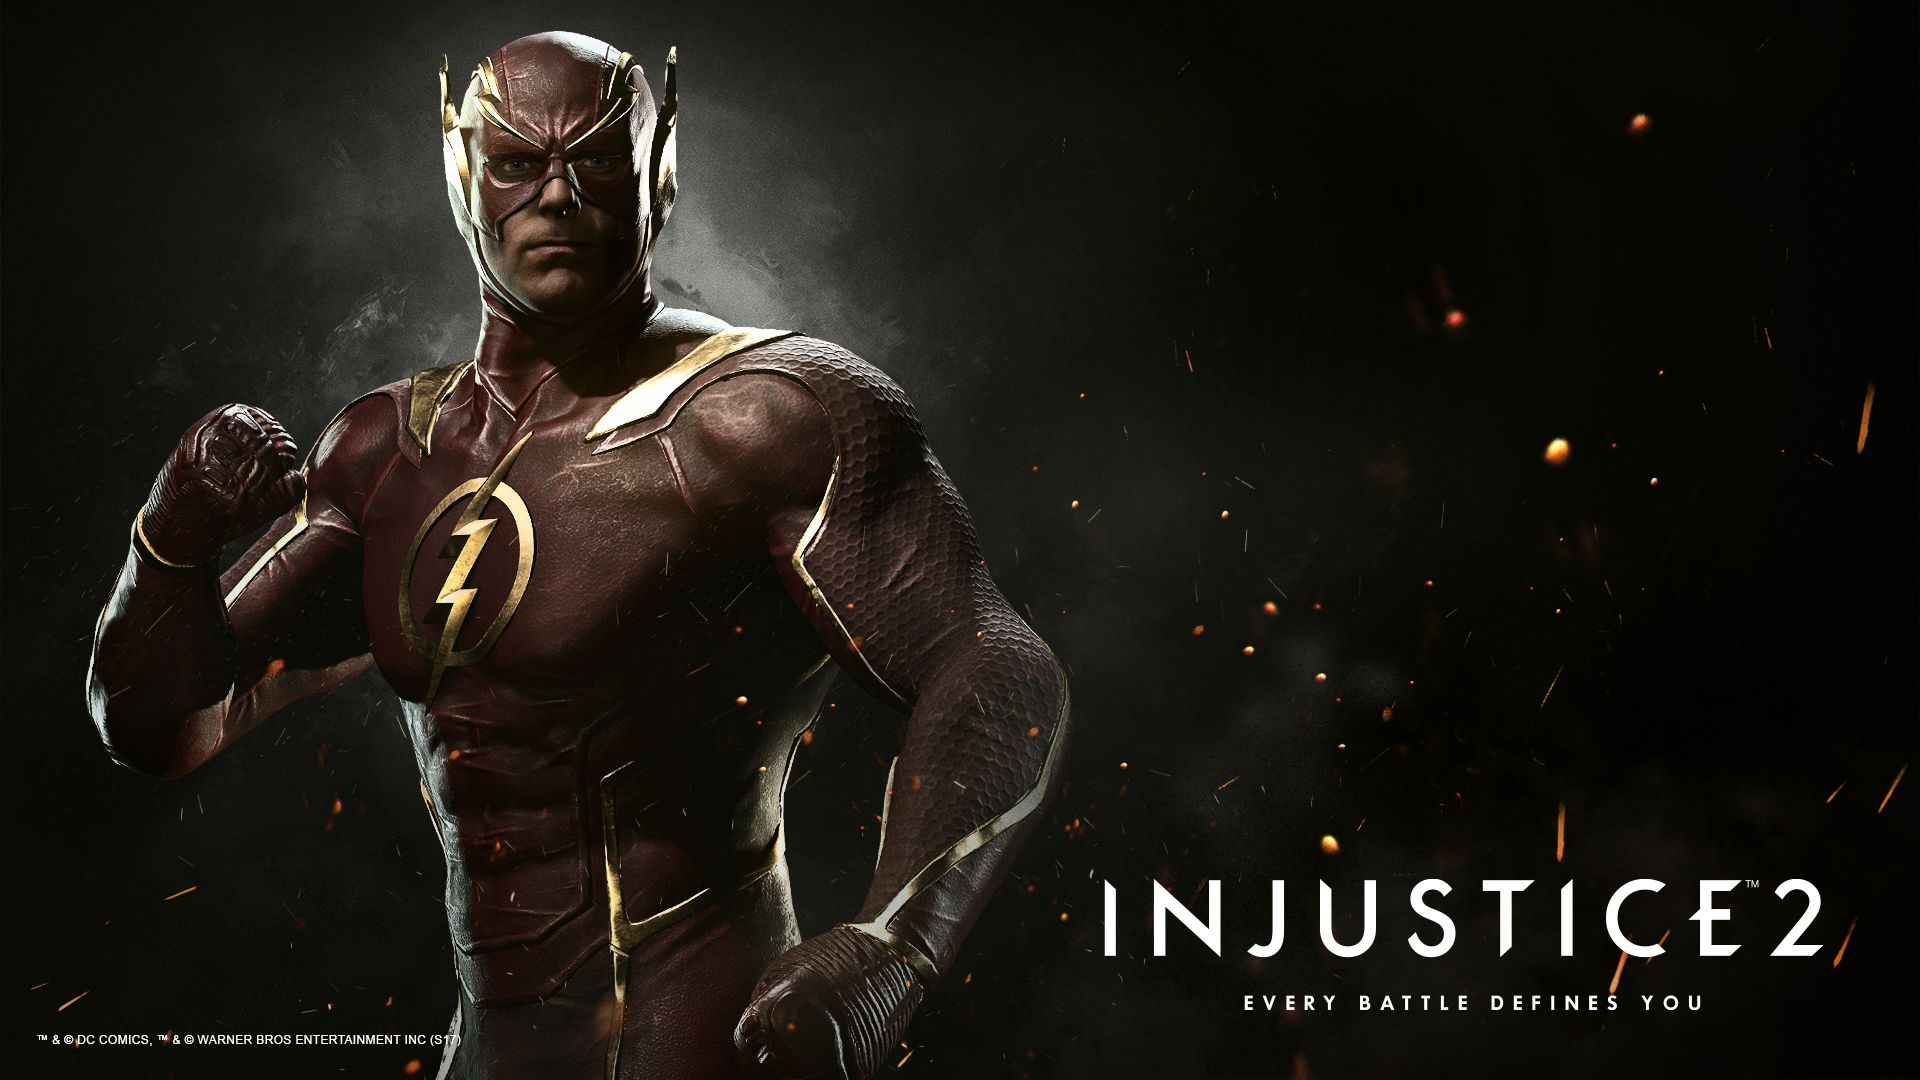 image - the flash injustice 2 wallpaper 0001 | dc database